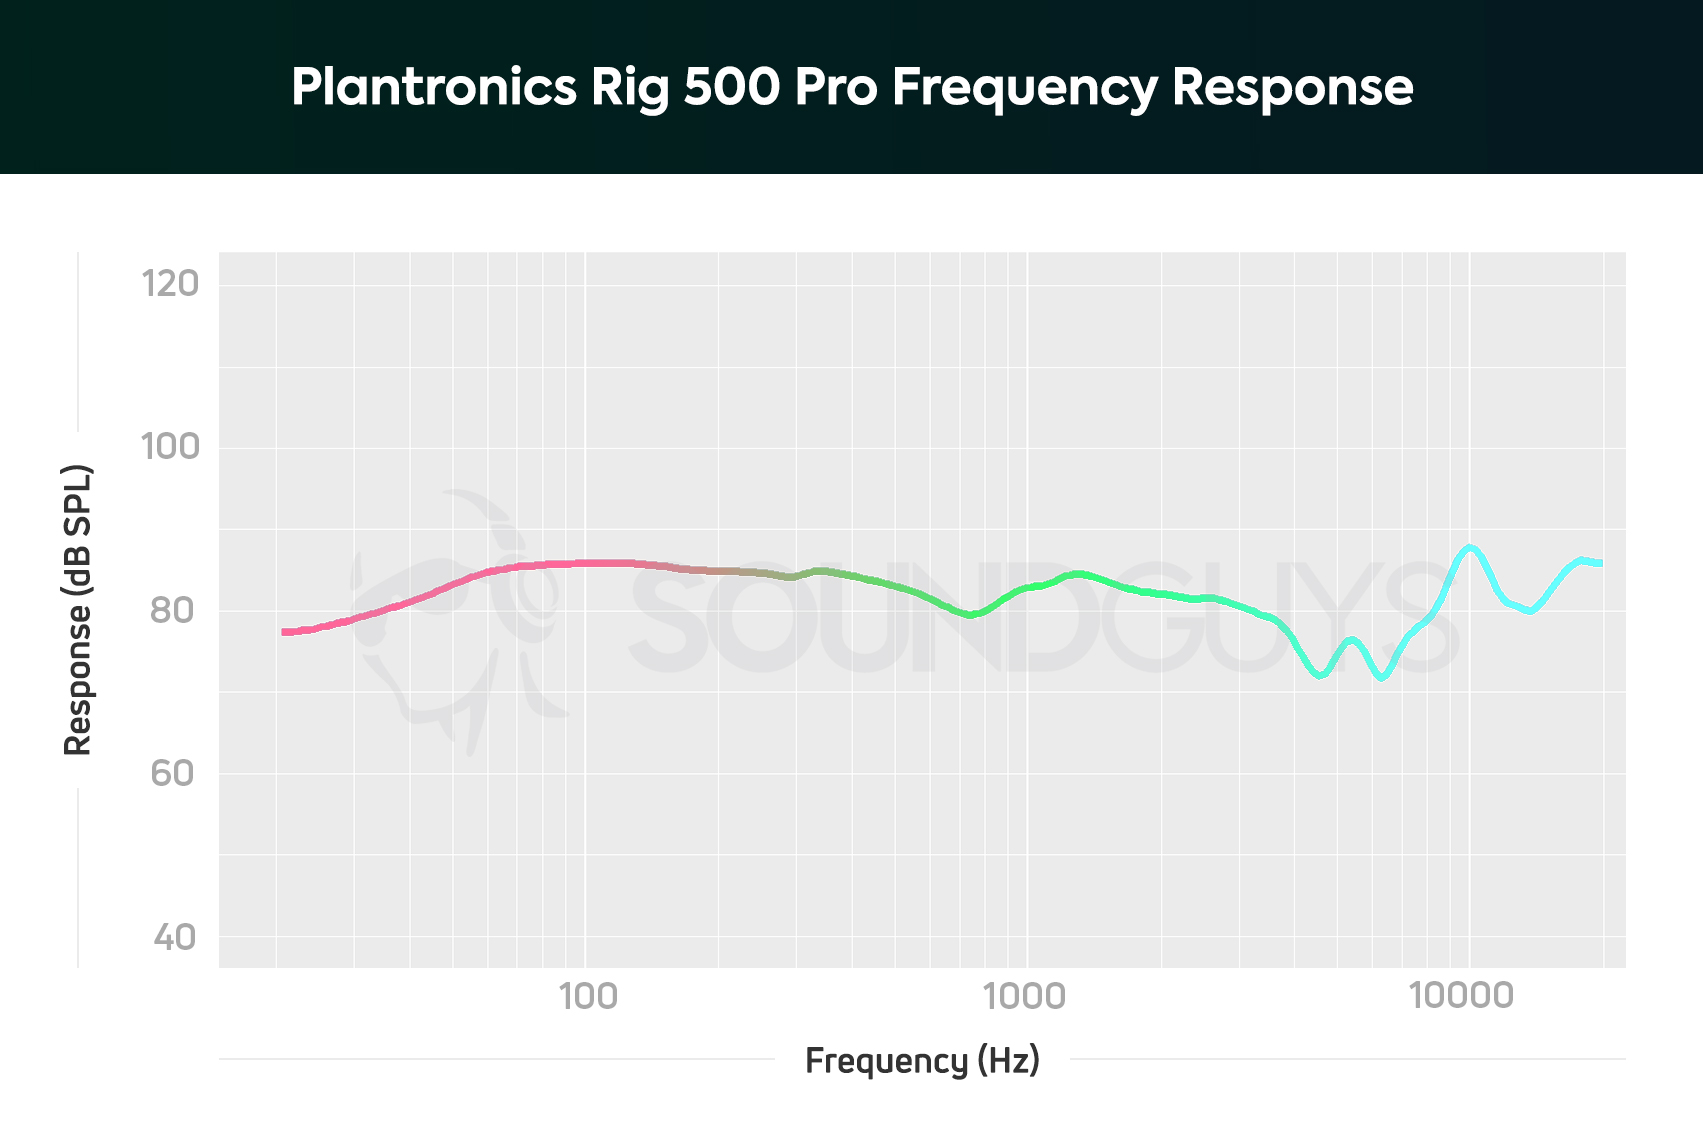 Plantronics Rig 500 Pro: Made for esports competitors